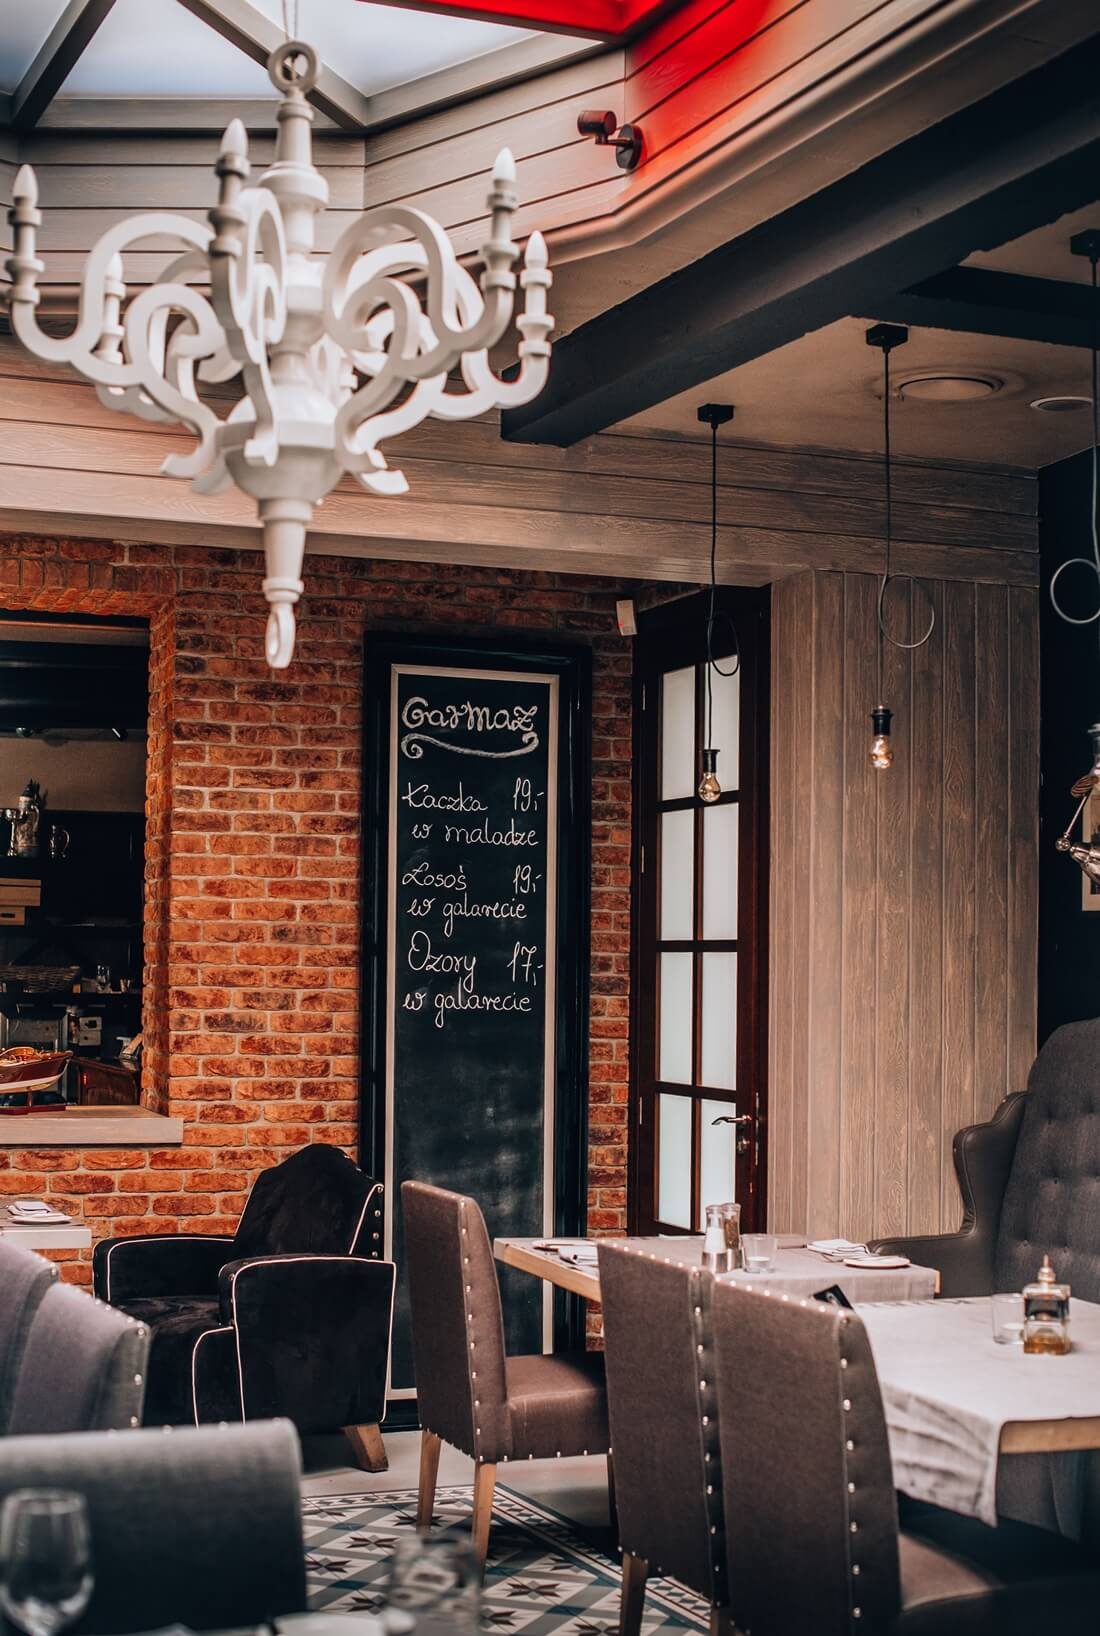 Kubicki 7 1 - A must see on the map of Gdańsk: Kubicki restaurant